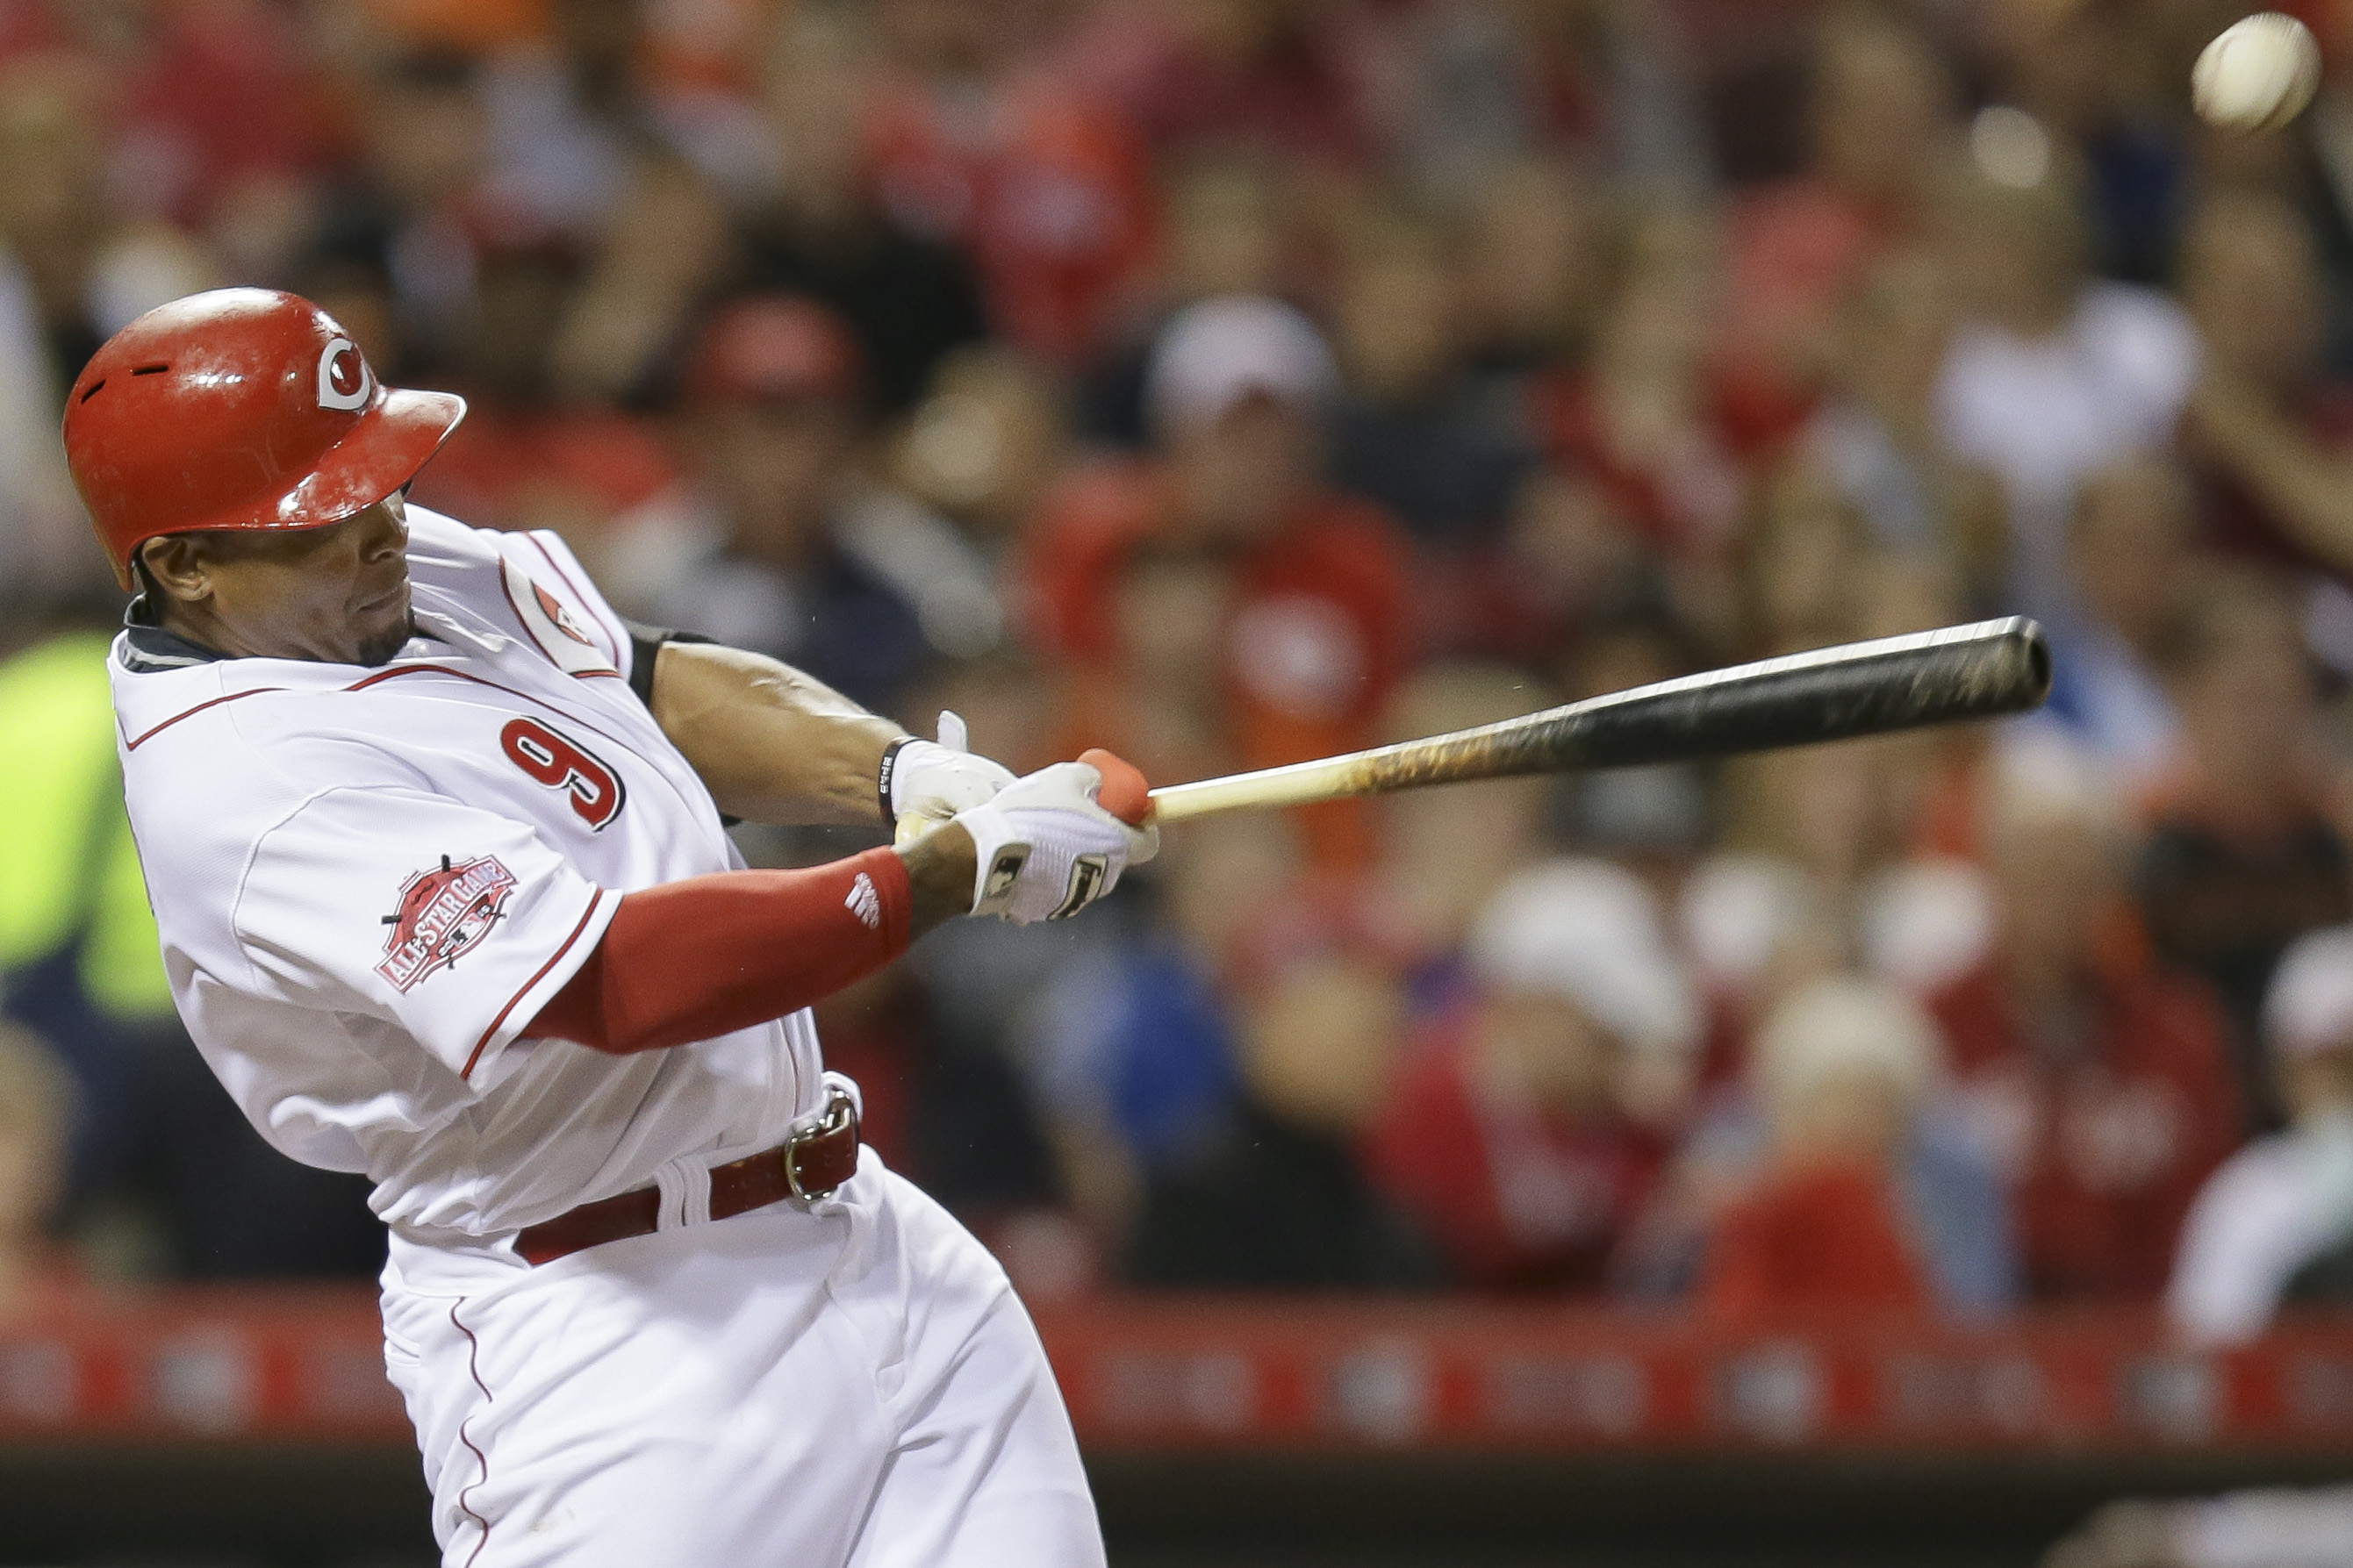 Cincinnati Reds Marlon Byrd hits a single to drive home Johnny Cueto and Zack Cozart in the fifth inning of a baseball game against the San Francisco Giants, Thursday, May 14, 2015, in Cincinnati. (AP Photo/John Minchillo)